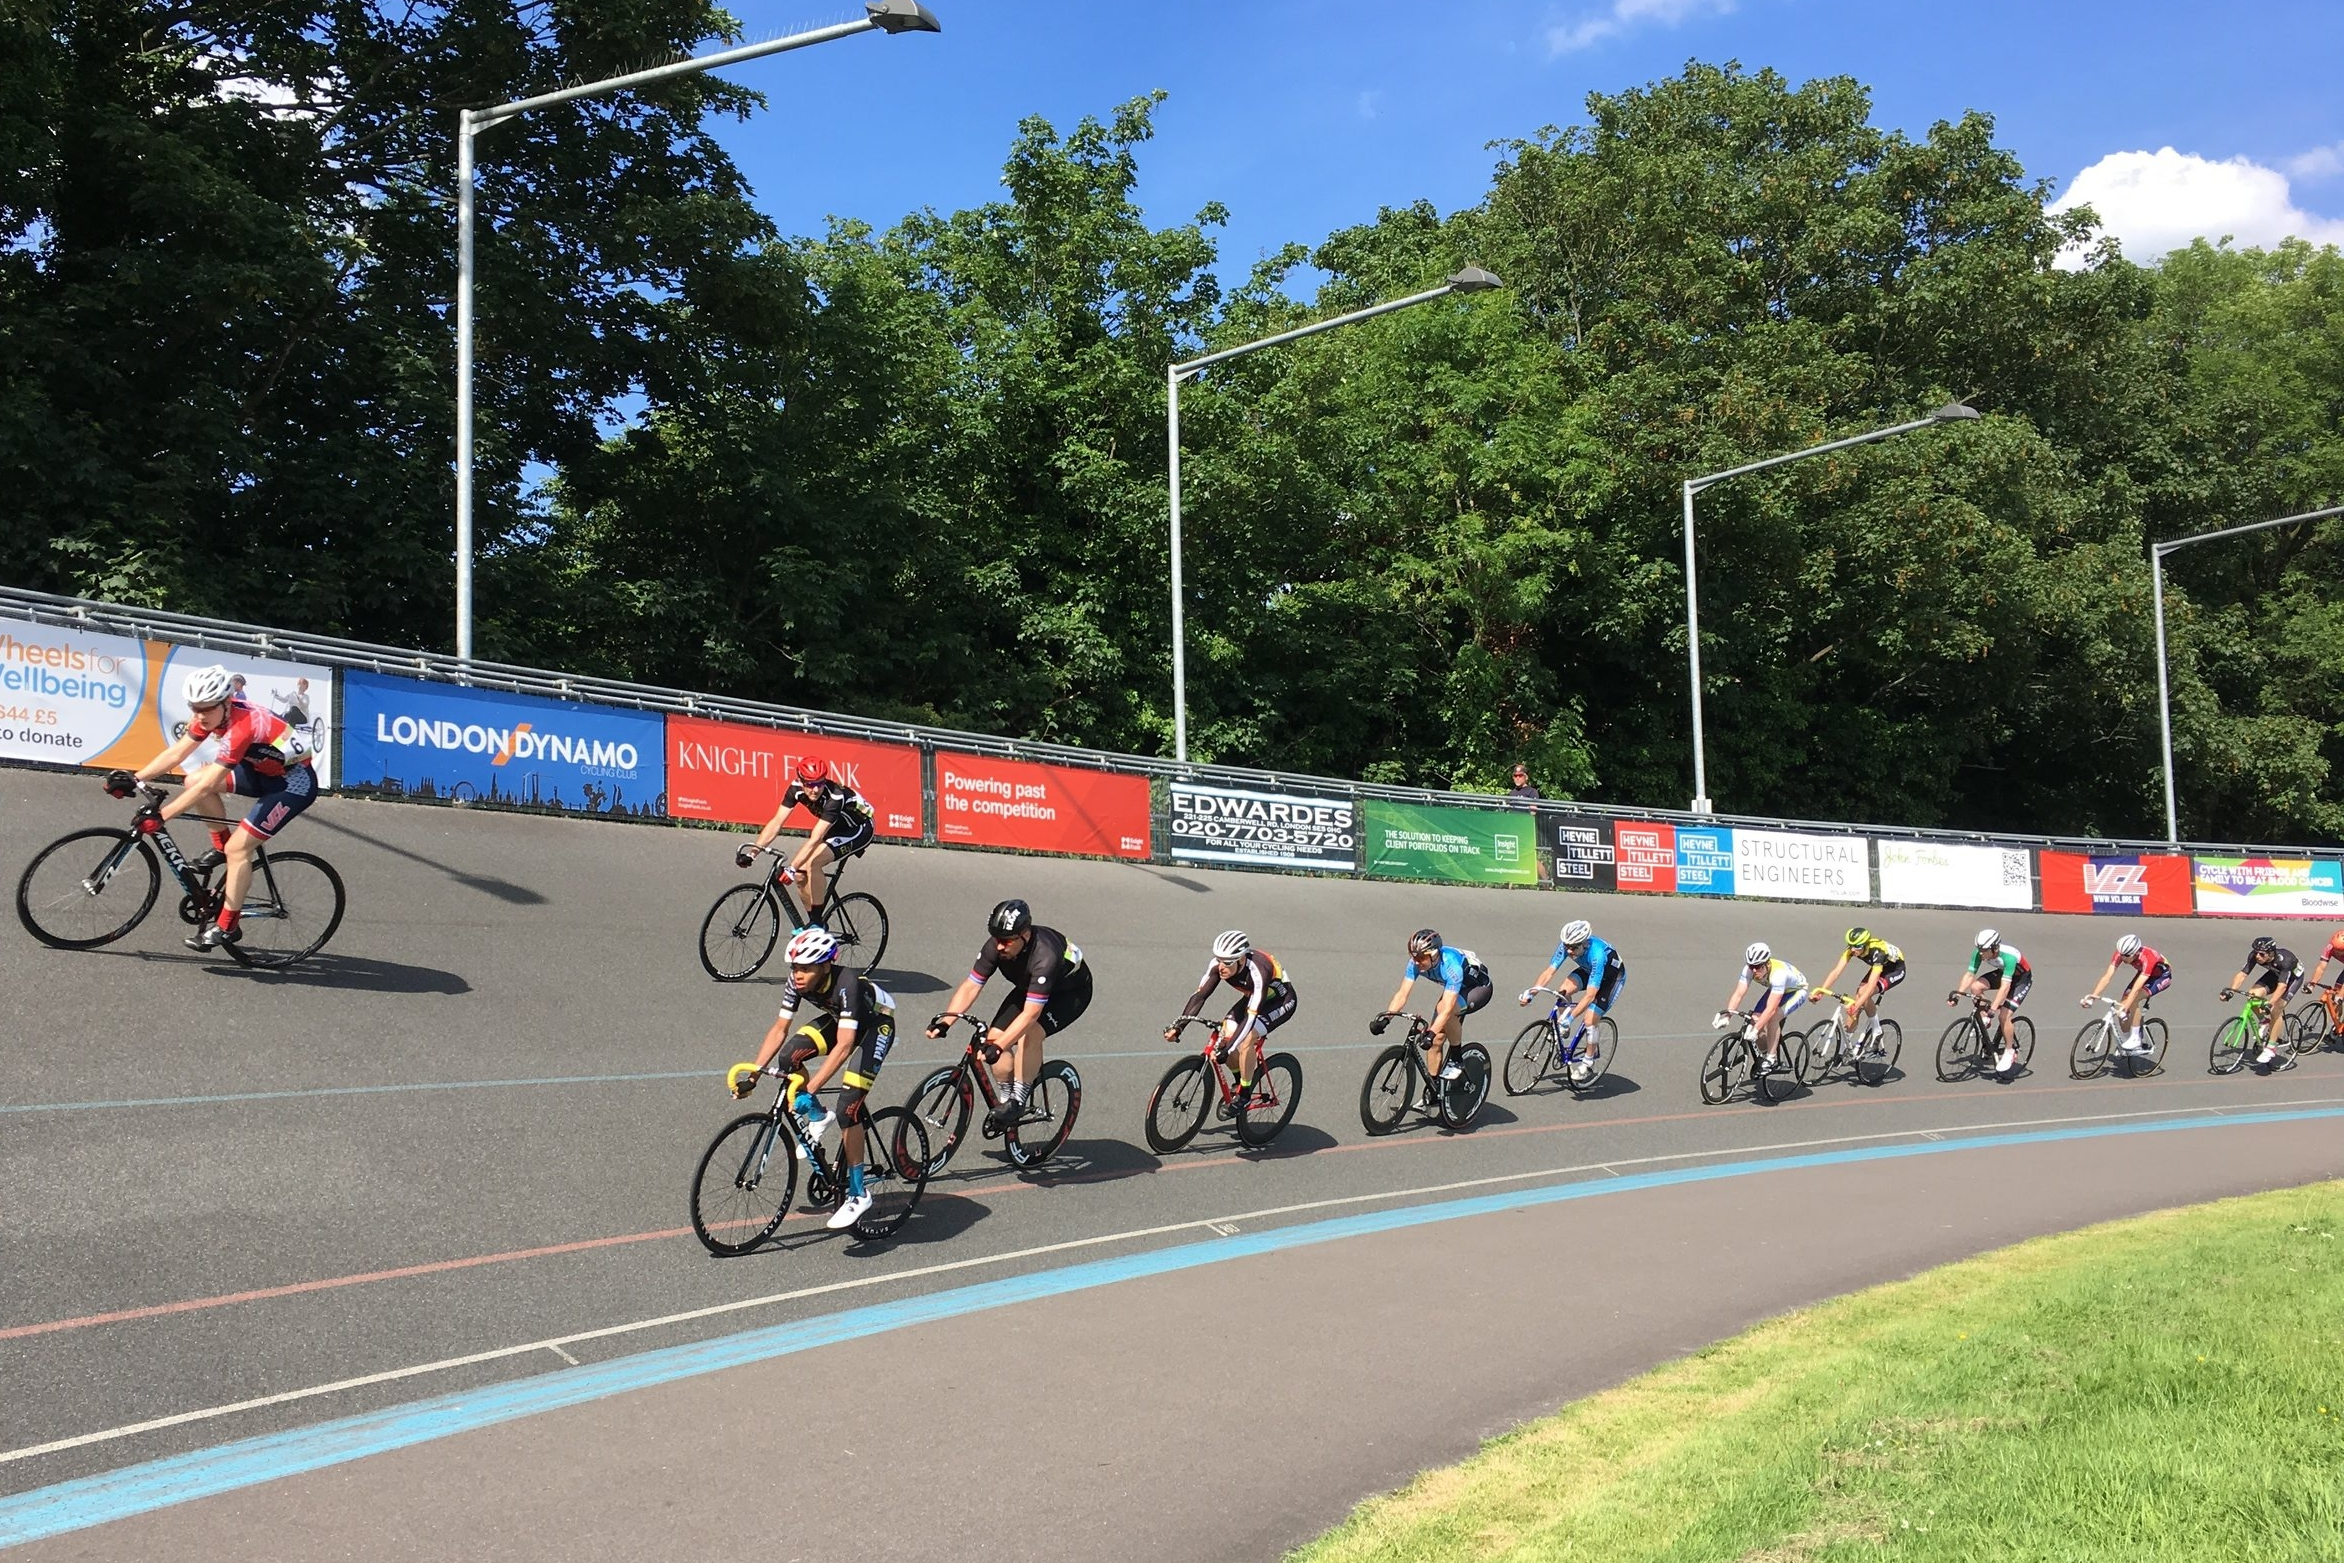 Track racing (10km race) at Herne Hill Velodrome